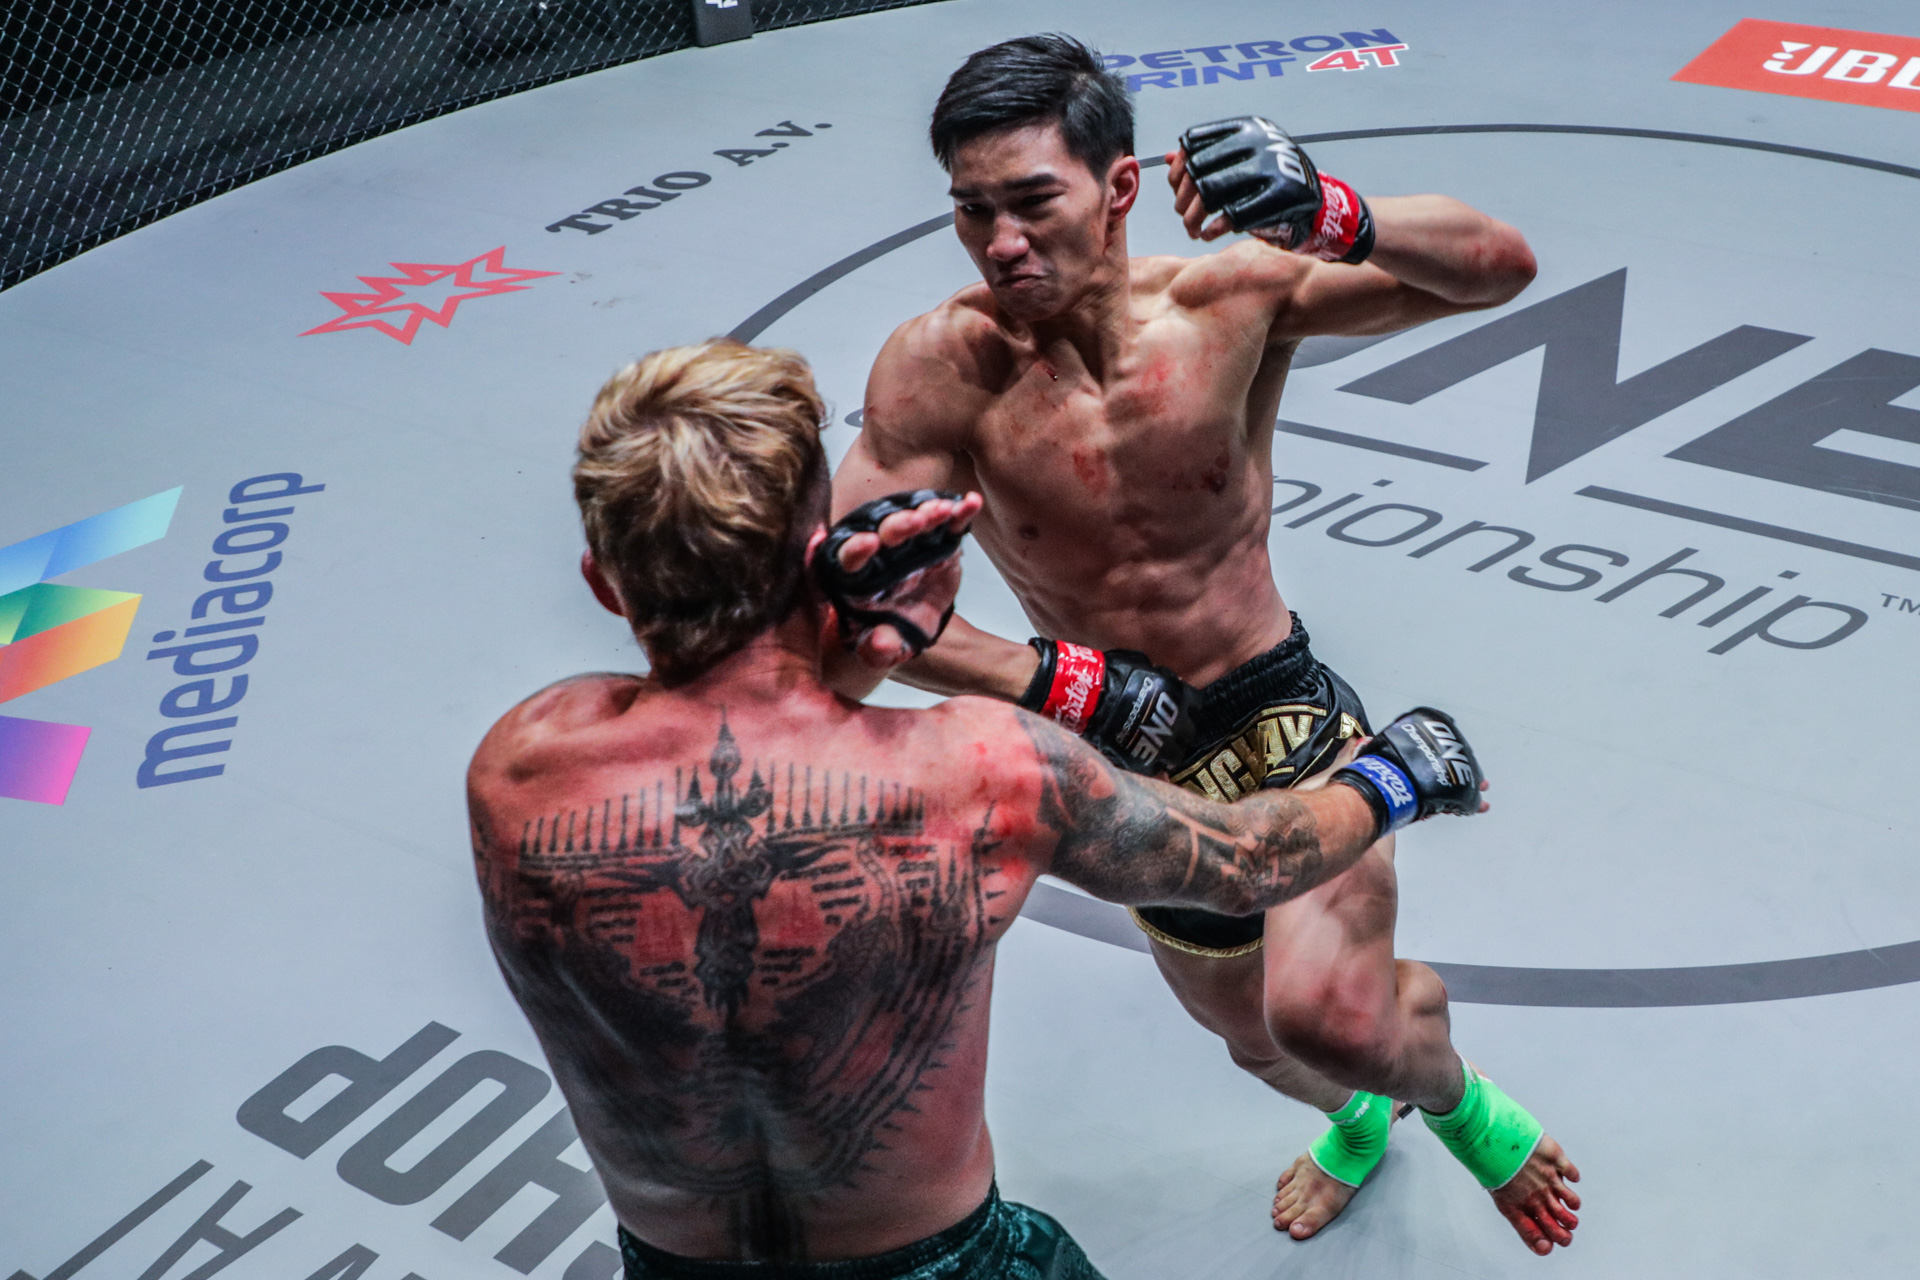 Pictures from the Muay Thai bout between Tawanchai PK.Saenchai Muaythaigym and Sean Clancy at ONE: DANGAL on 15 May